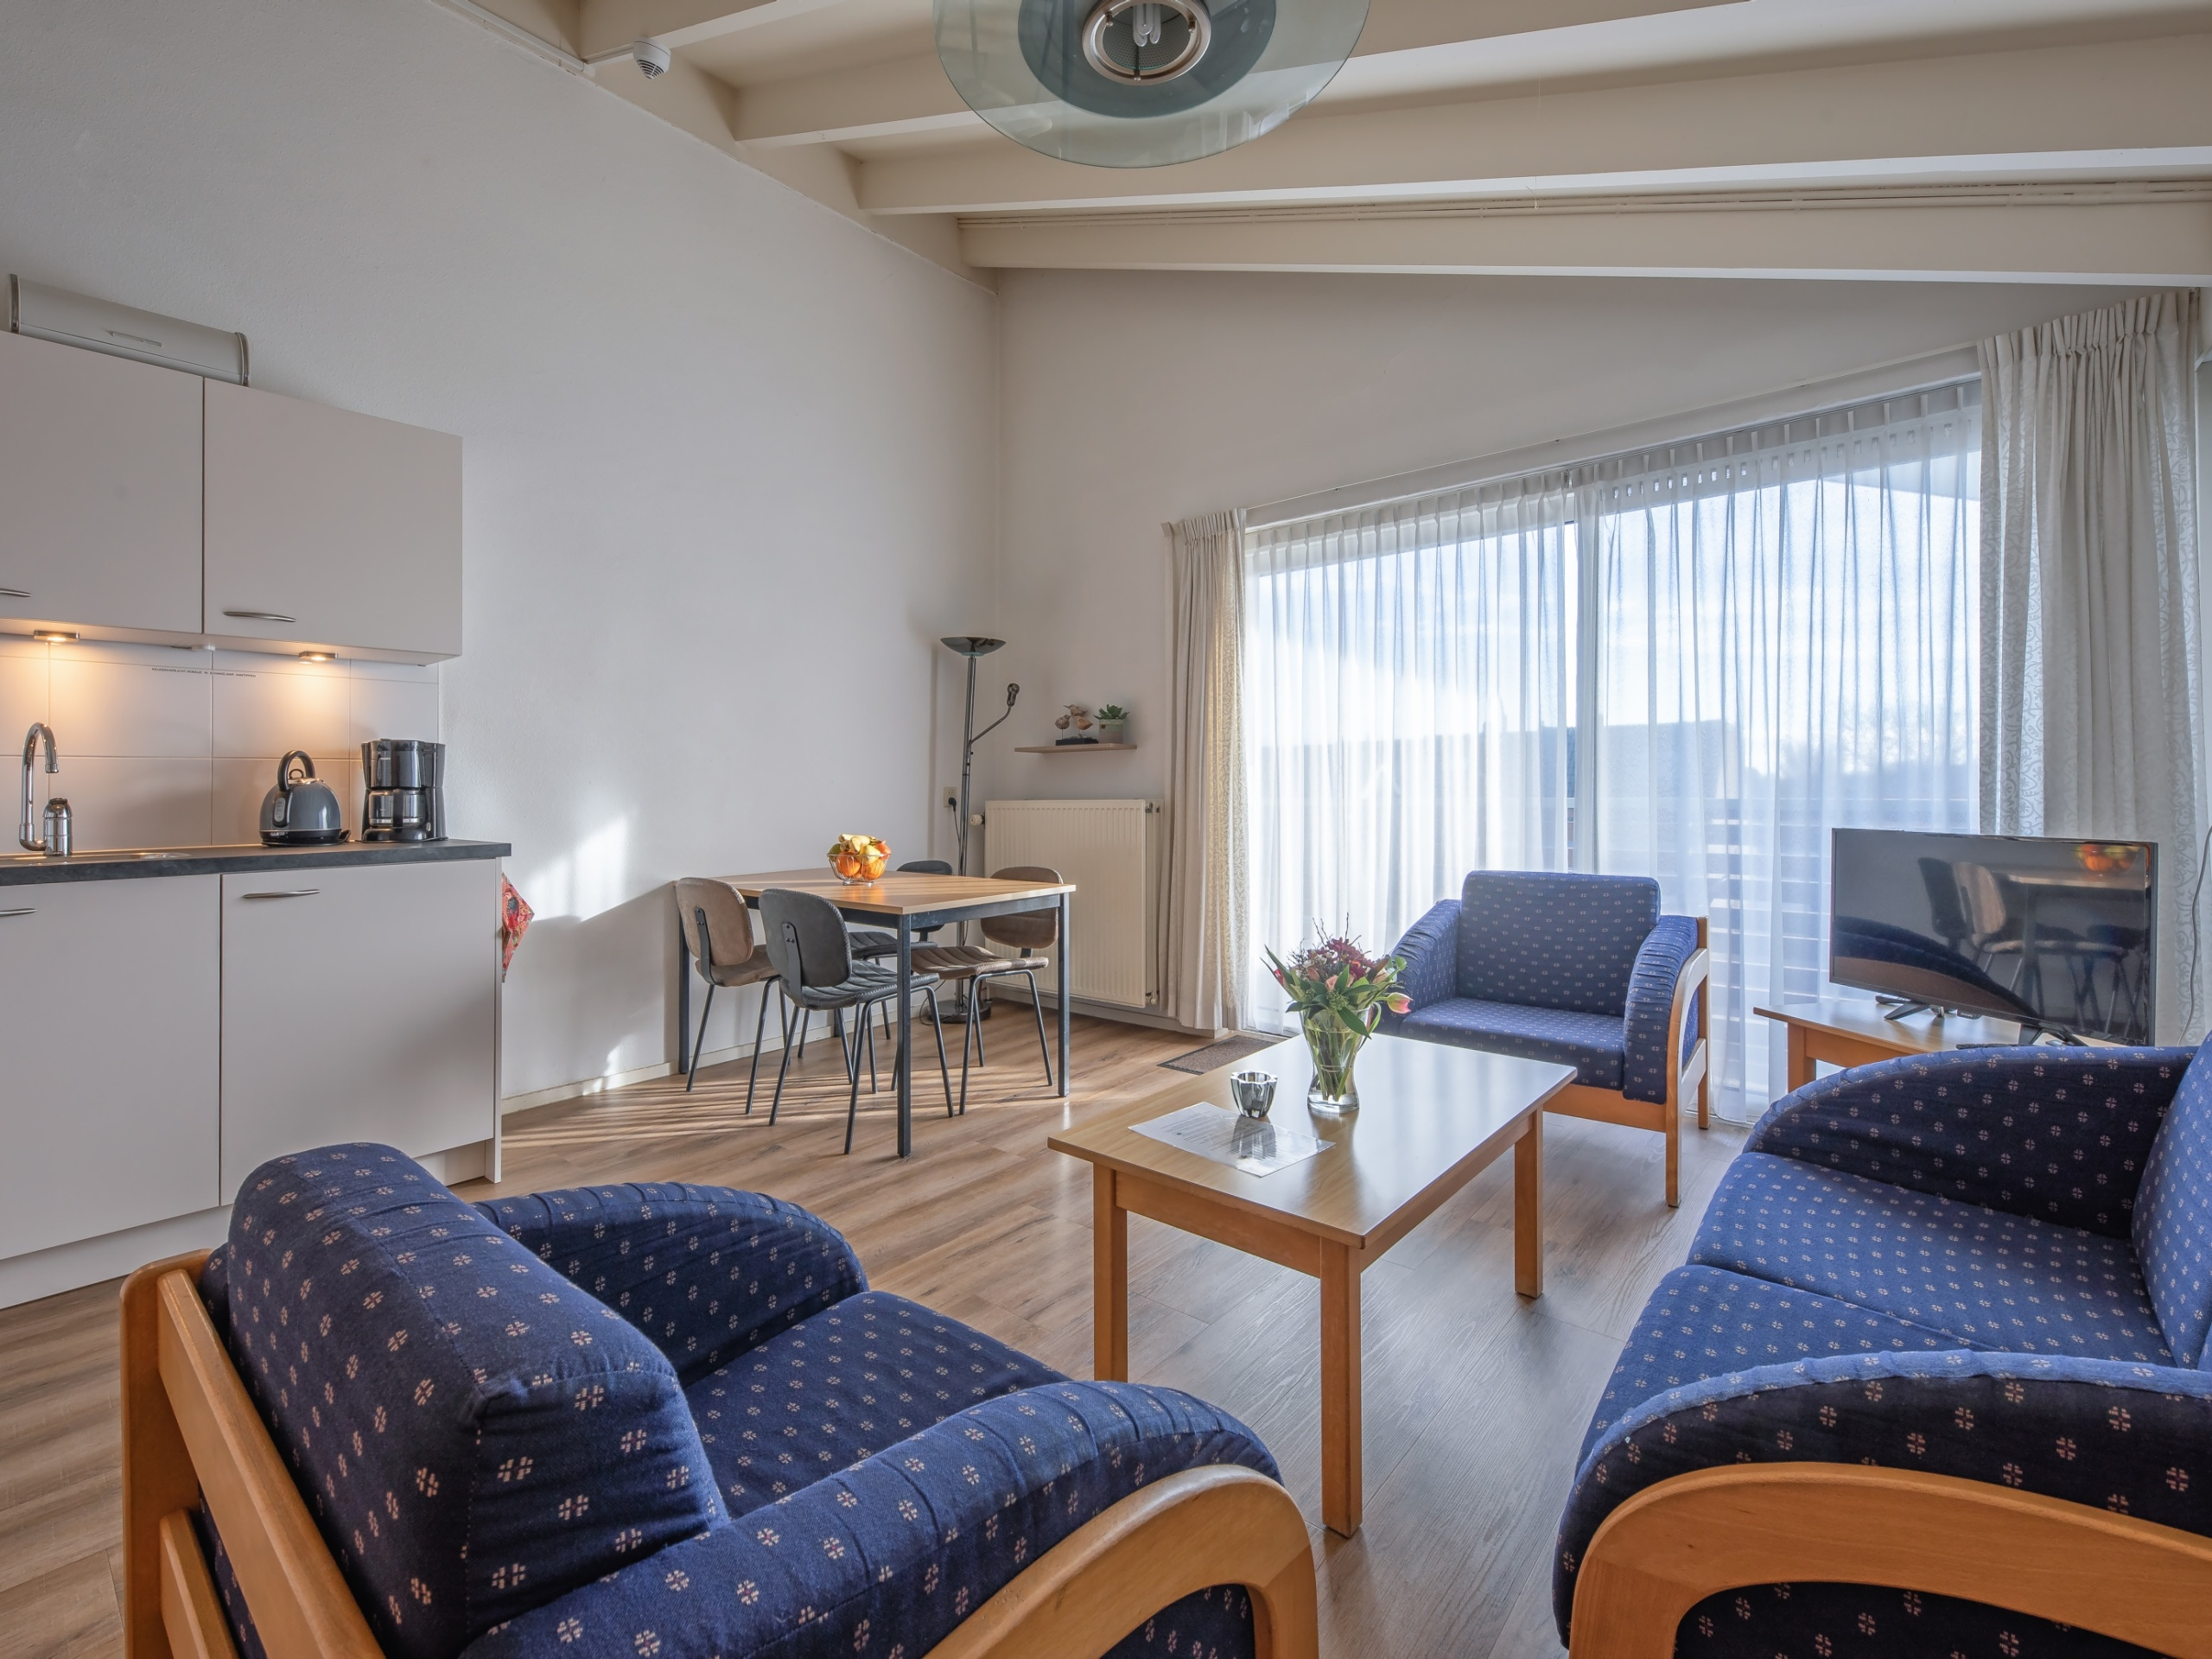 Comfortable apartment in a perfect location near the beach in De Koog